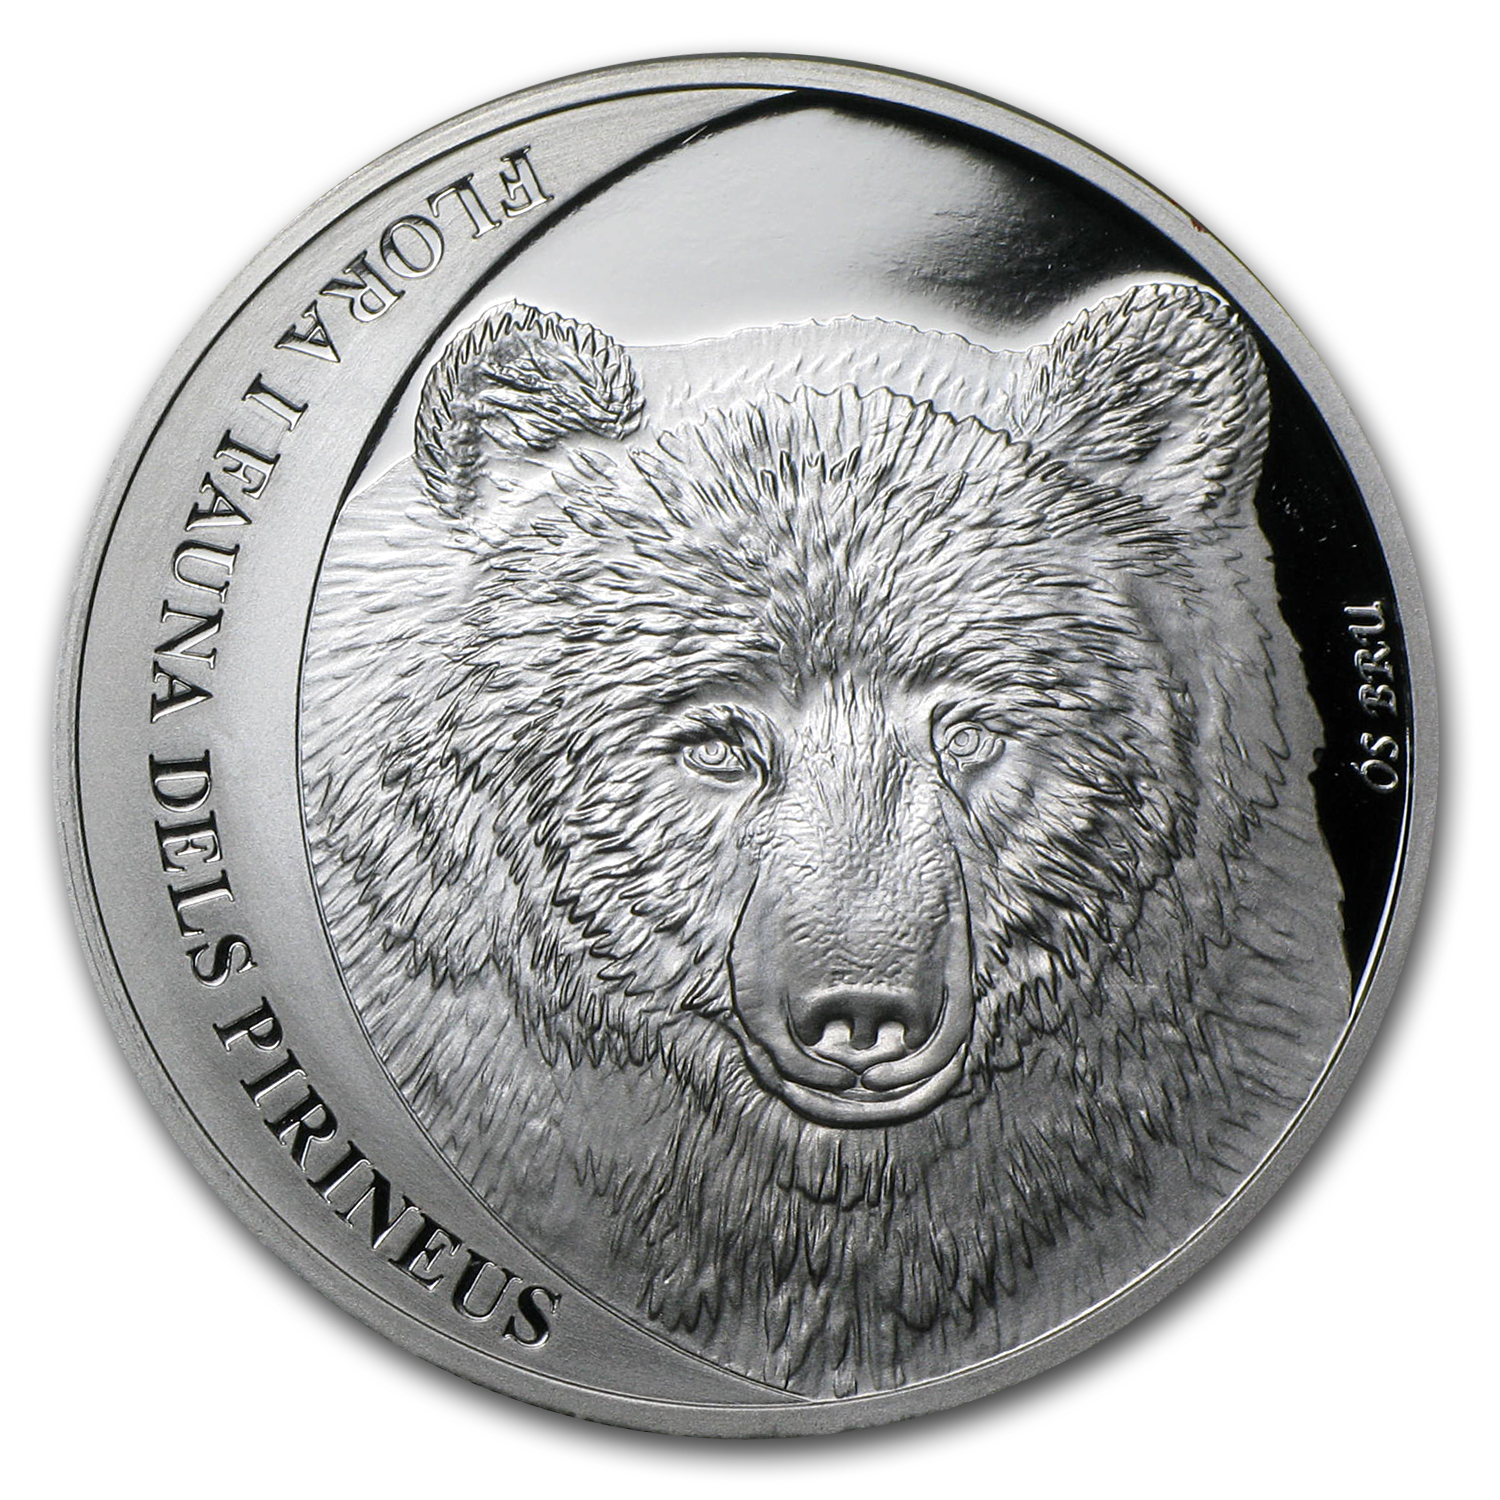 2010 Andorra Proof Silver 5 Diners Cantabrian Brown Bear